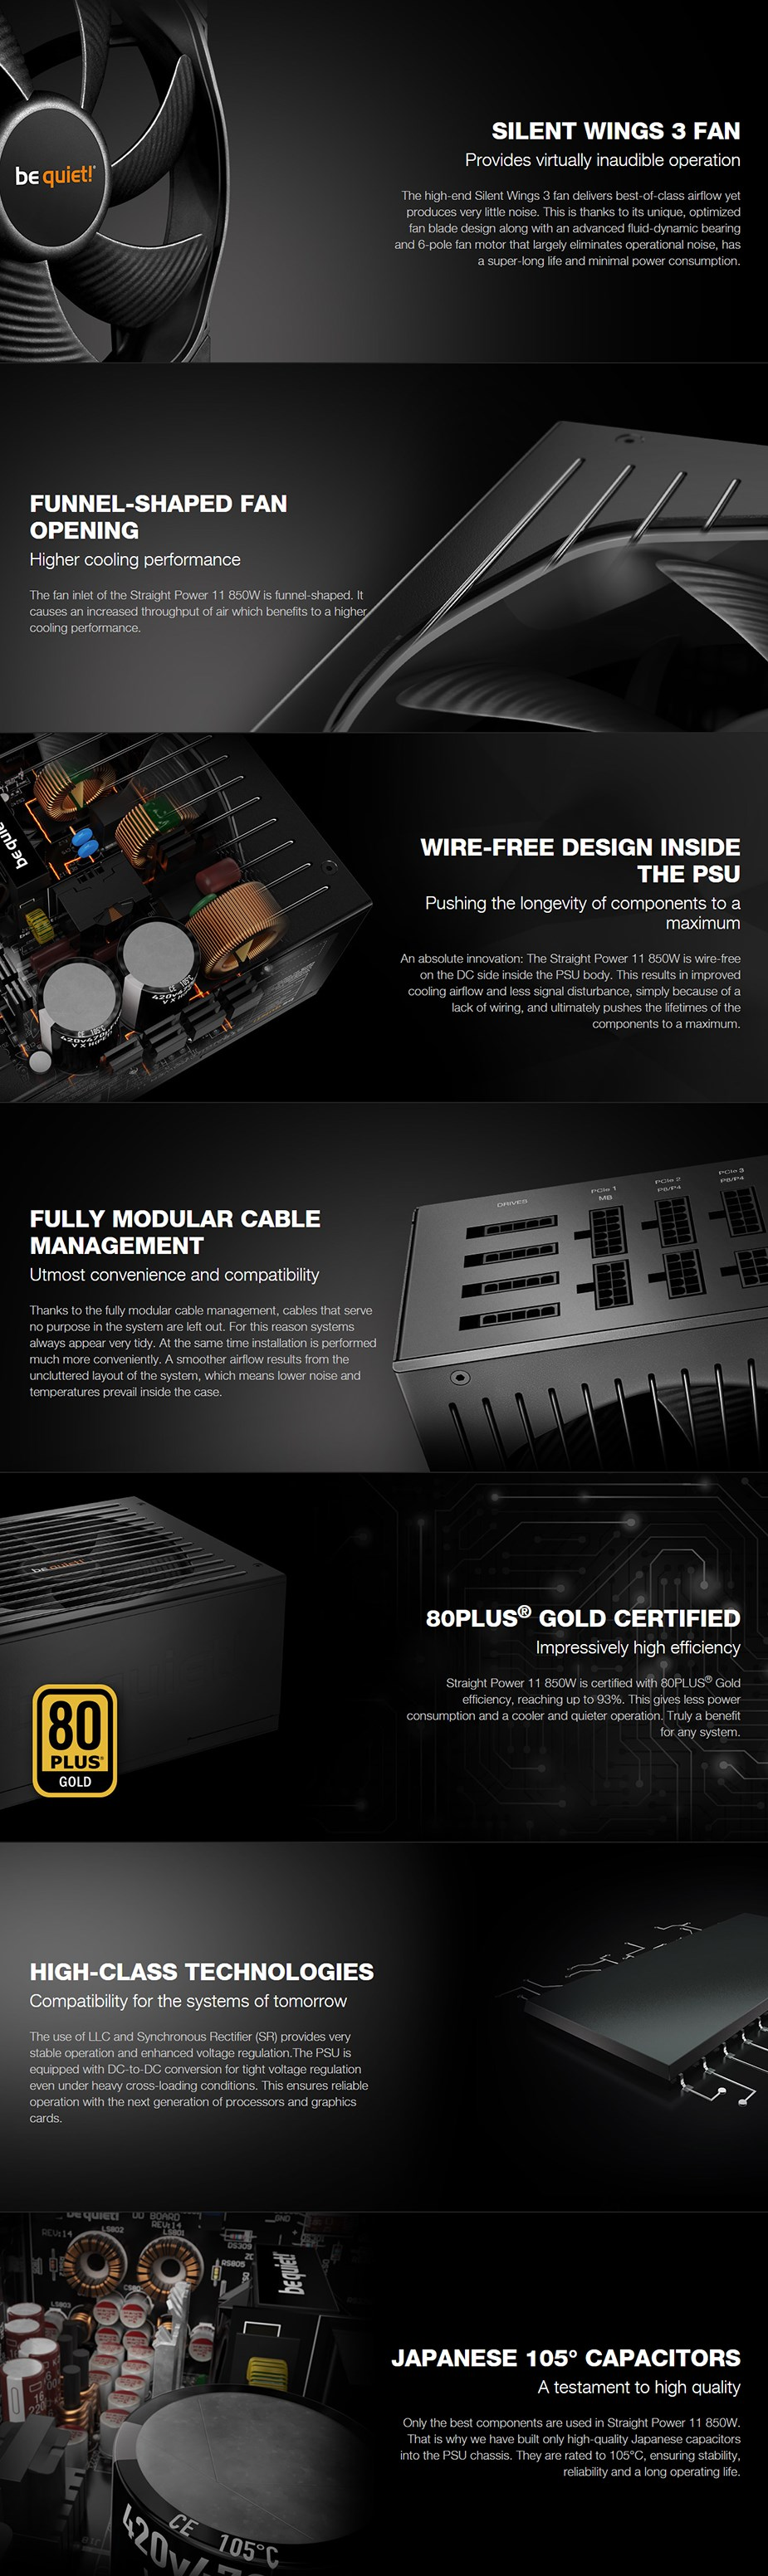 be quiet! Straight Power 11 850W 80+ Gold Modular Power Supply - Desktop Overview 1